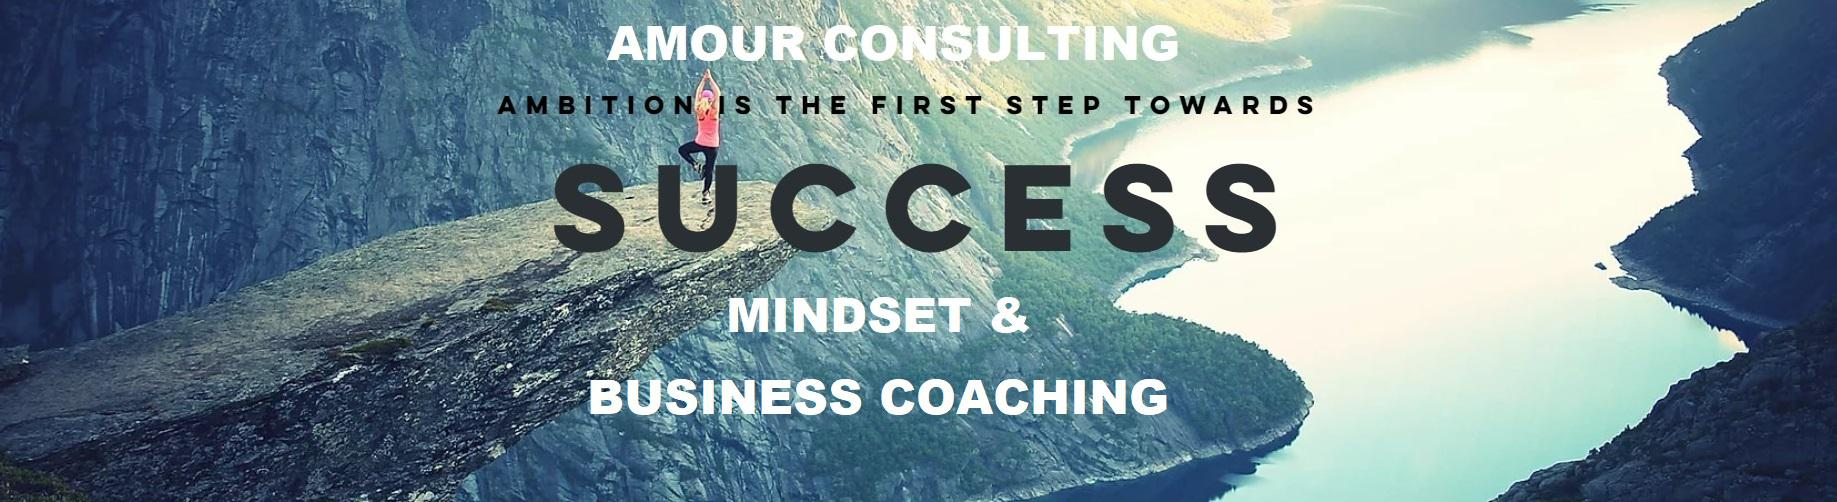 Amour Consulting - Mindset & Business Coaching Logo